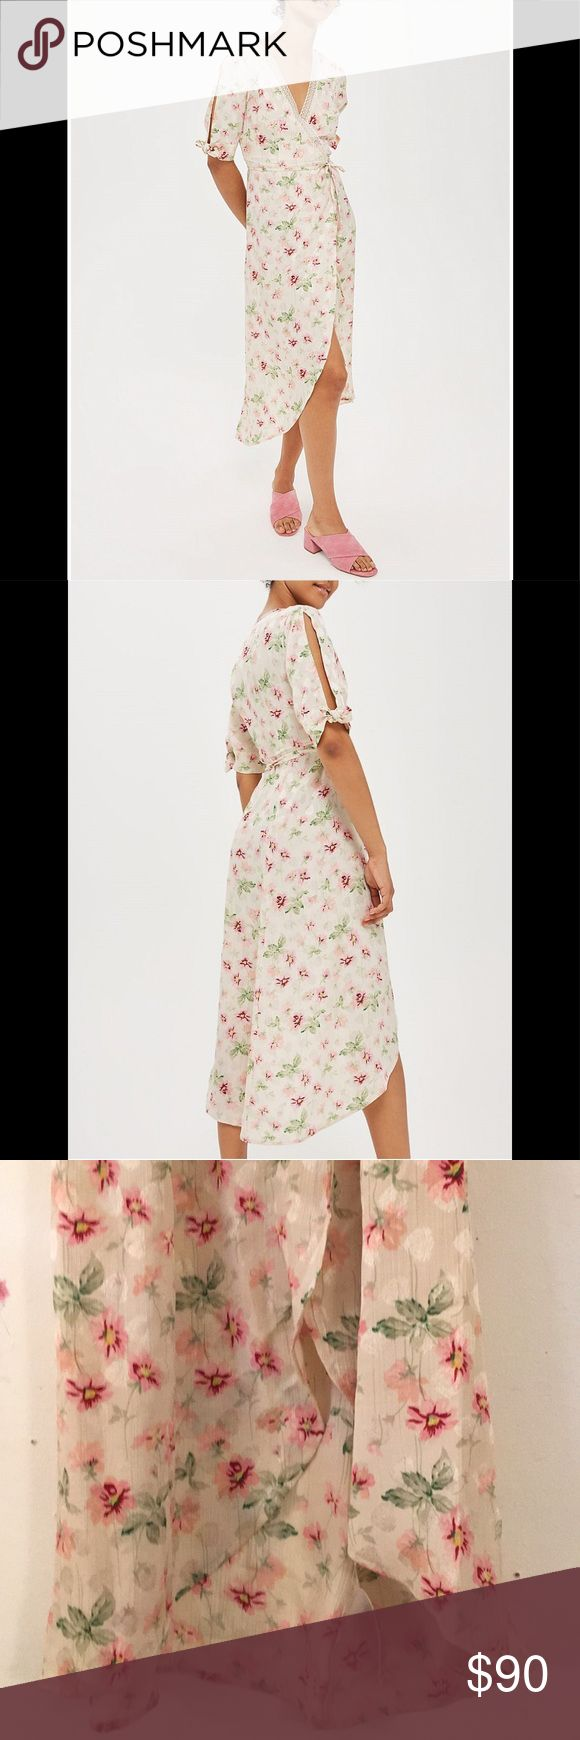 """Topshop Floral-print Jacquard Dress Size US 4. Wrap around front fastening at waist, v-neck with tie detail at cuffs, all over jacquard floral pattern, fitted waist, frills detailing, lace trims, curved hem, 100% polyester. Length: 35"""" (front hemline) to 47"""" (back hemline). Sleeve length: 9"""". *worn once, like new* Topshop Dresses Midi"""